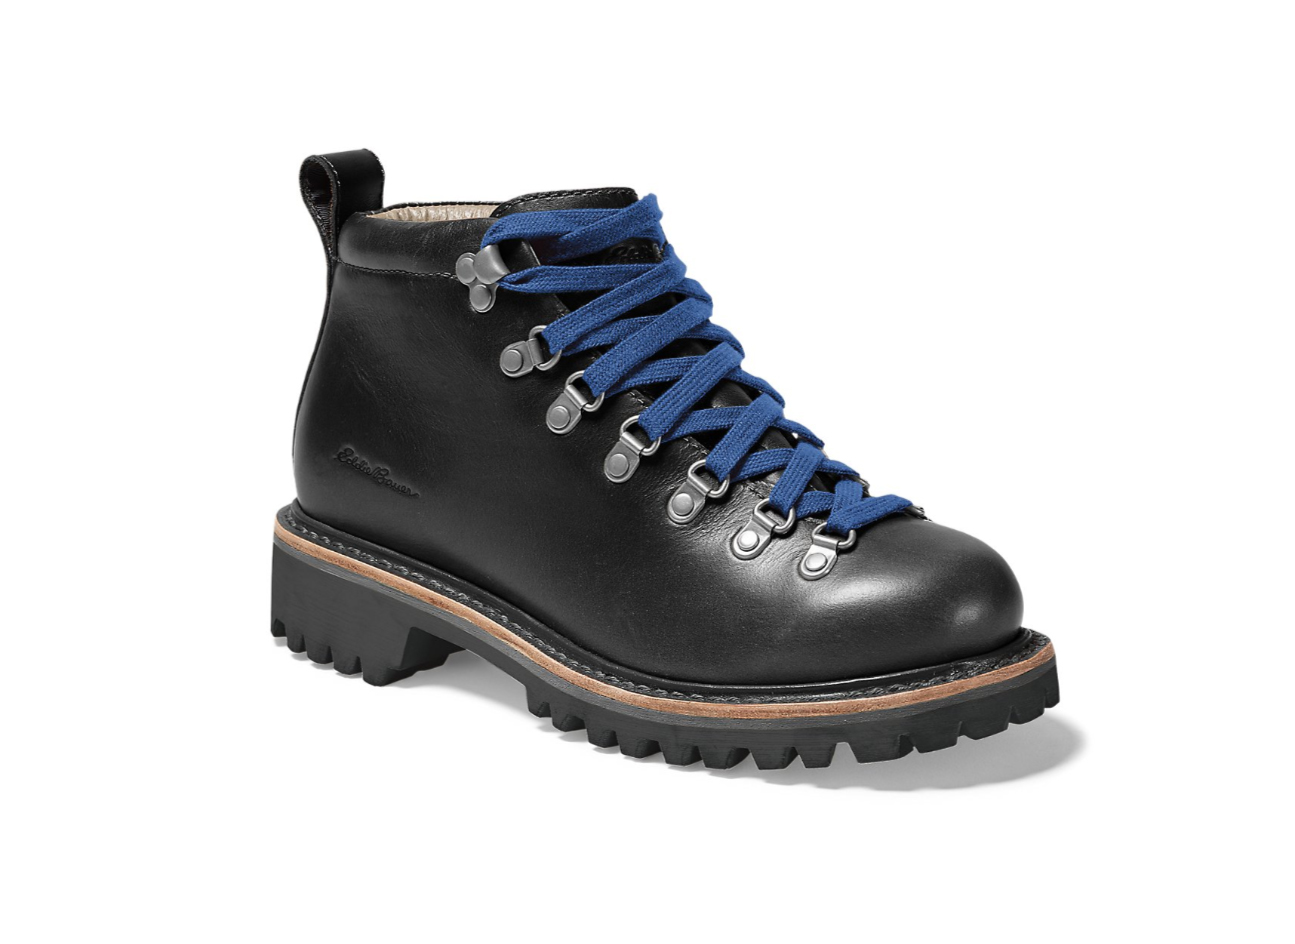 Eddie Bauer K-6 hiking boot